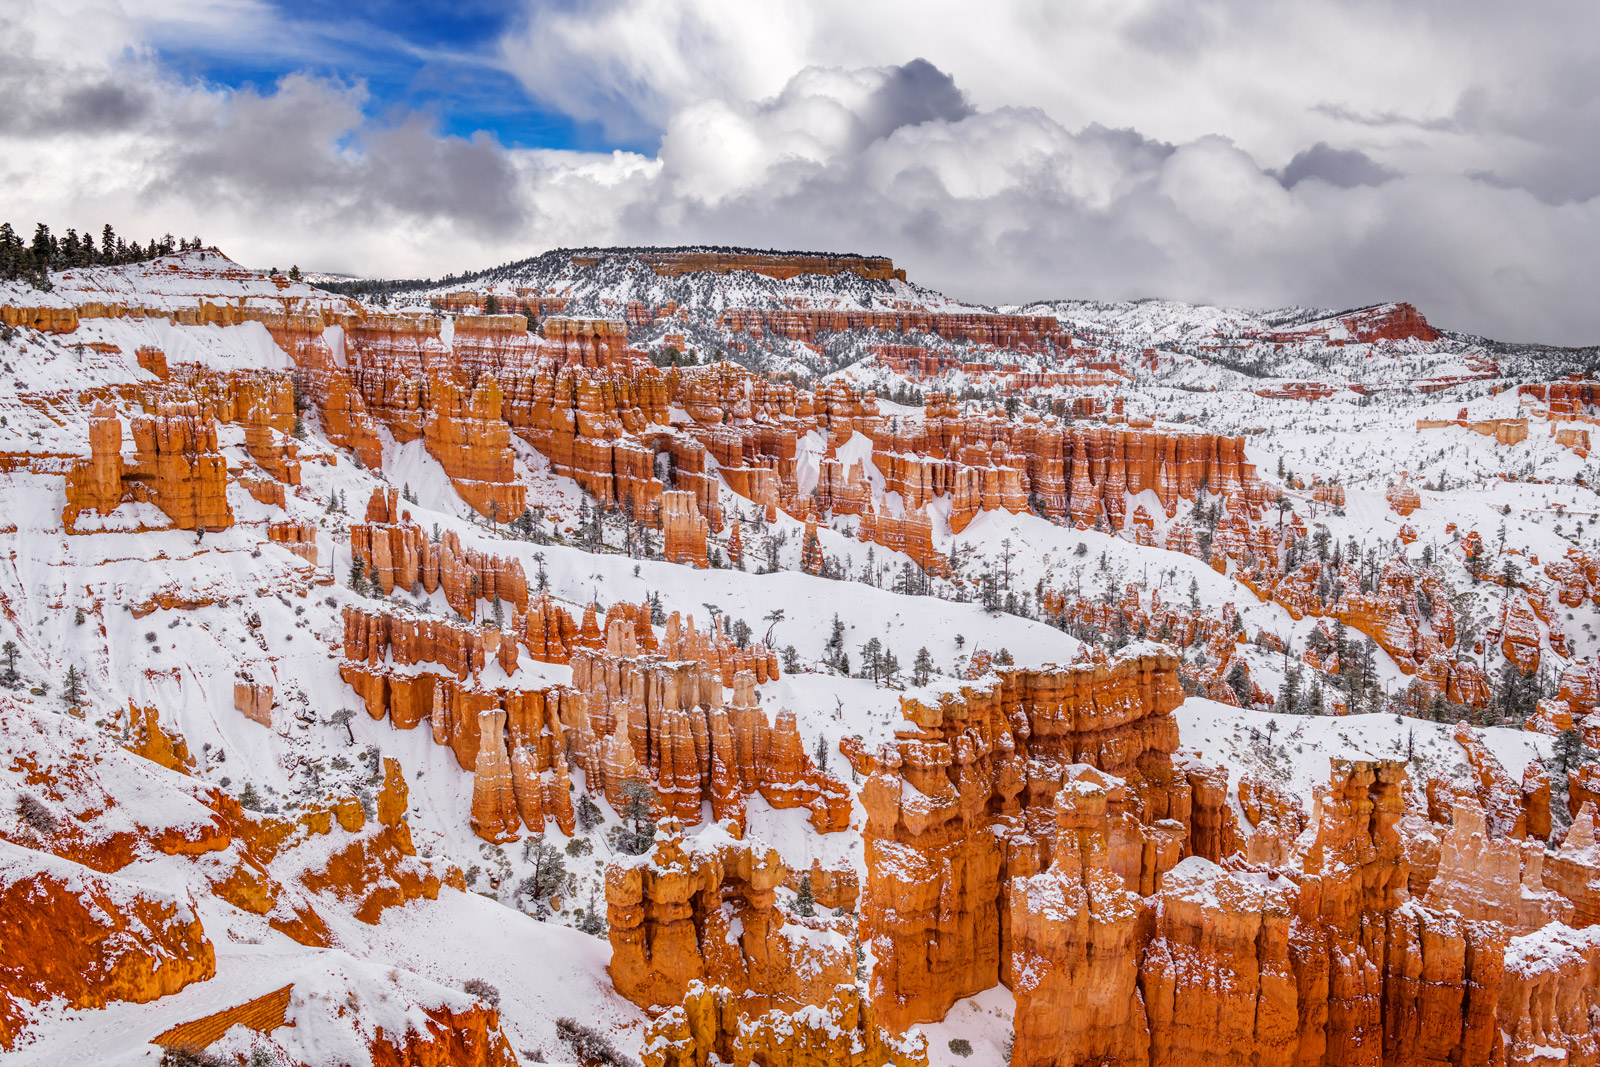 A Limited Edition, Fine Art photograph of Bryce Canyon with a fresh snowfall on the red rock hoodoos after a full day and night...